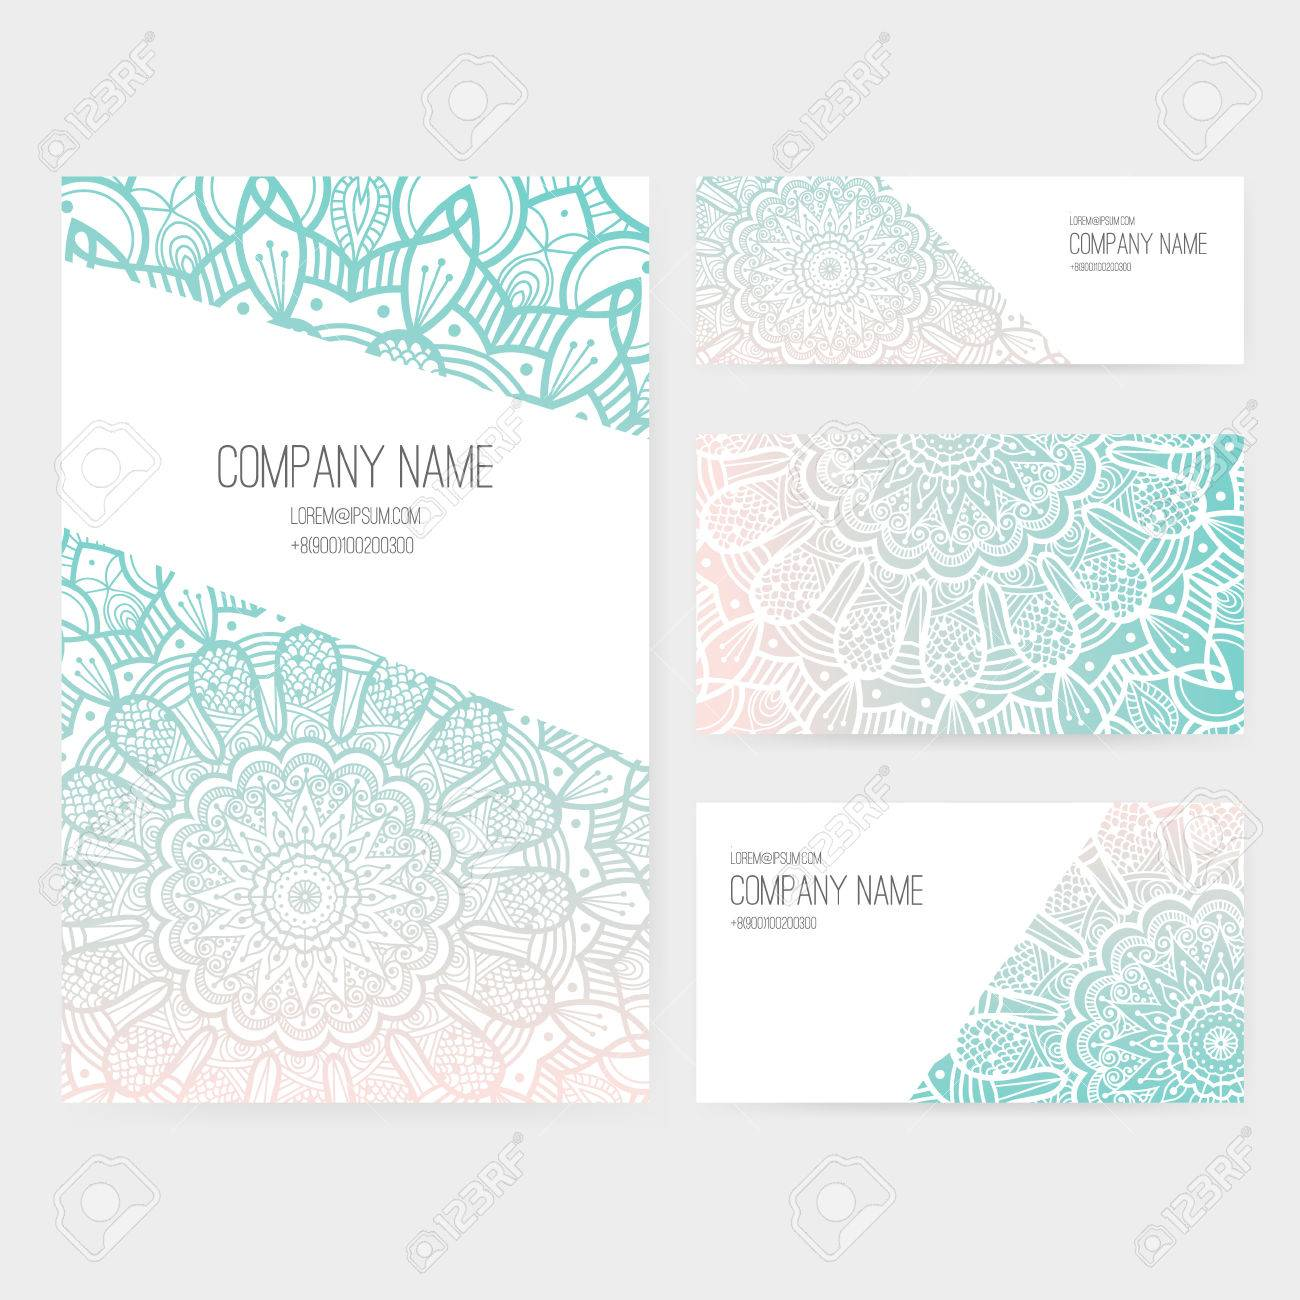 doc invitation card company best ideas about set of business card and invitation card templates lace invitation card company